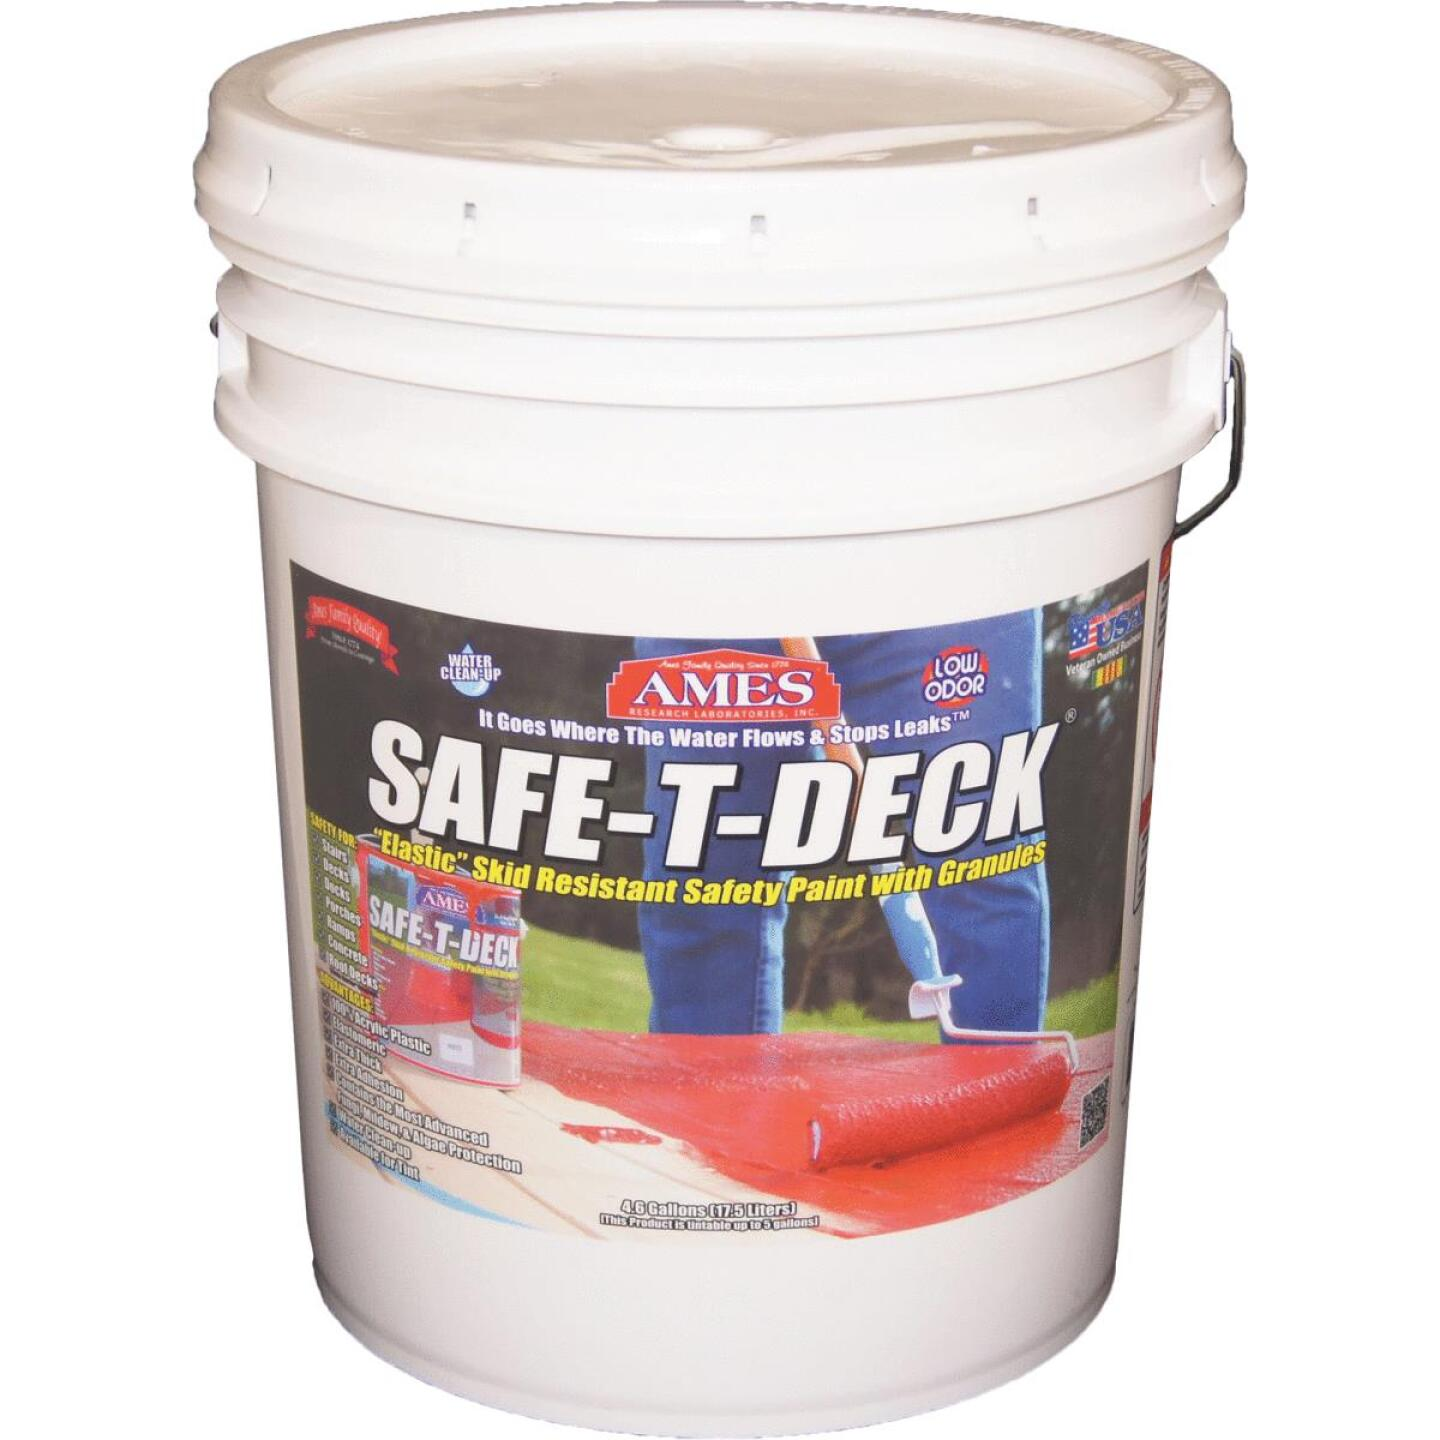 Ames Safe-T-Deck Tan Elastomeric Waterproofing Sealer, 5 Gal. Deck Paint Image 1